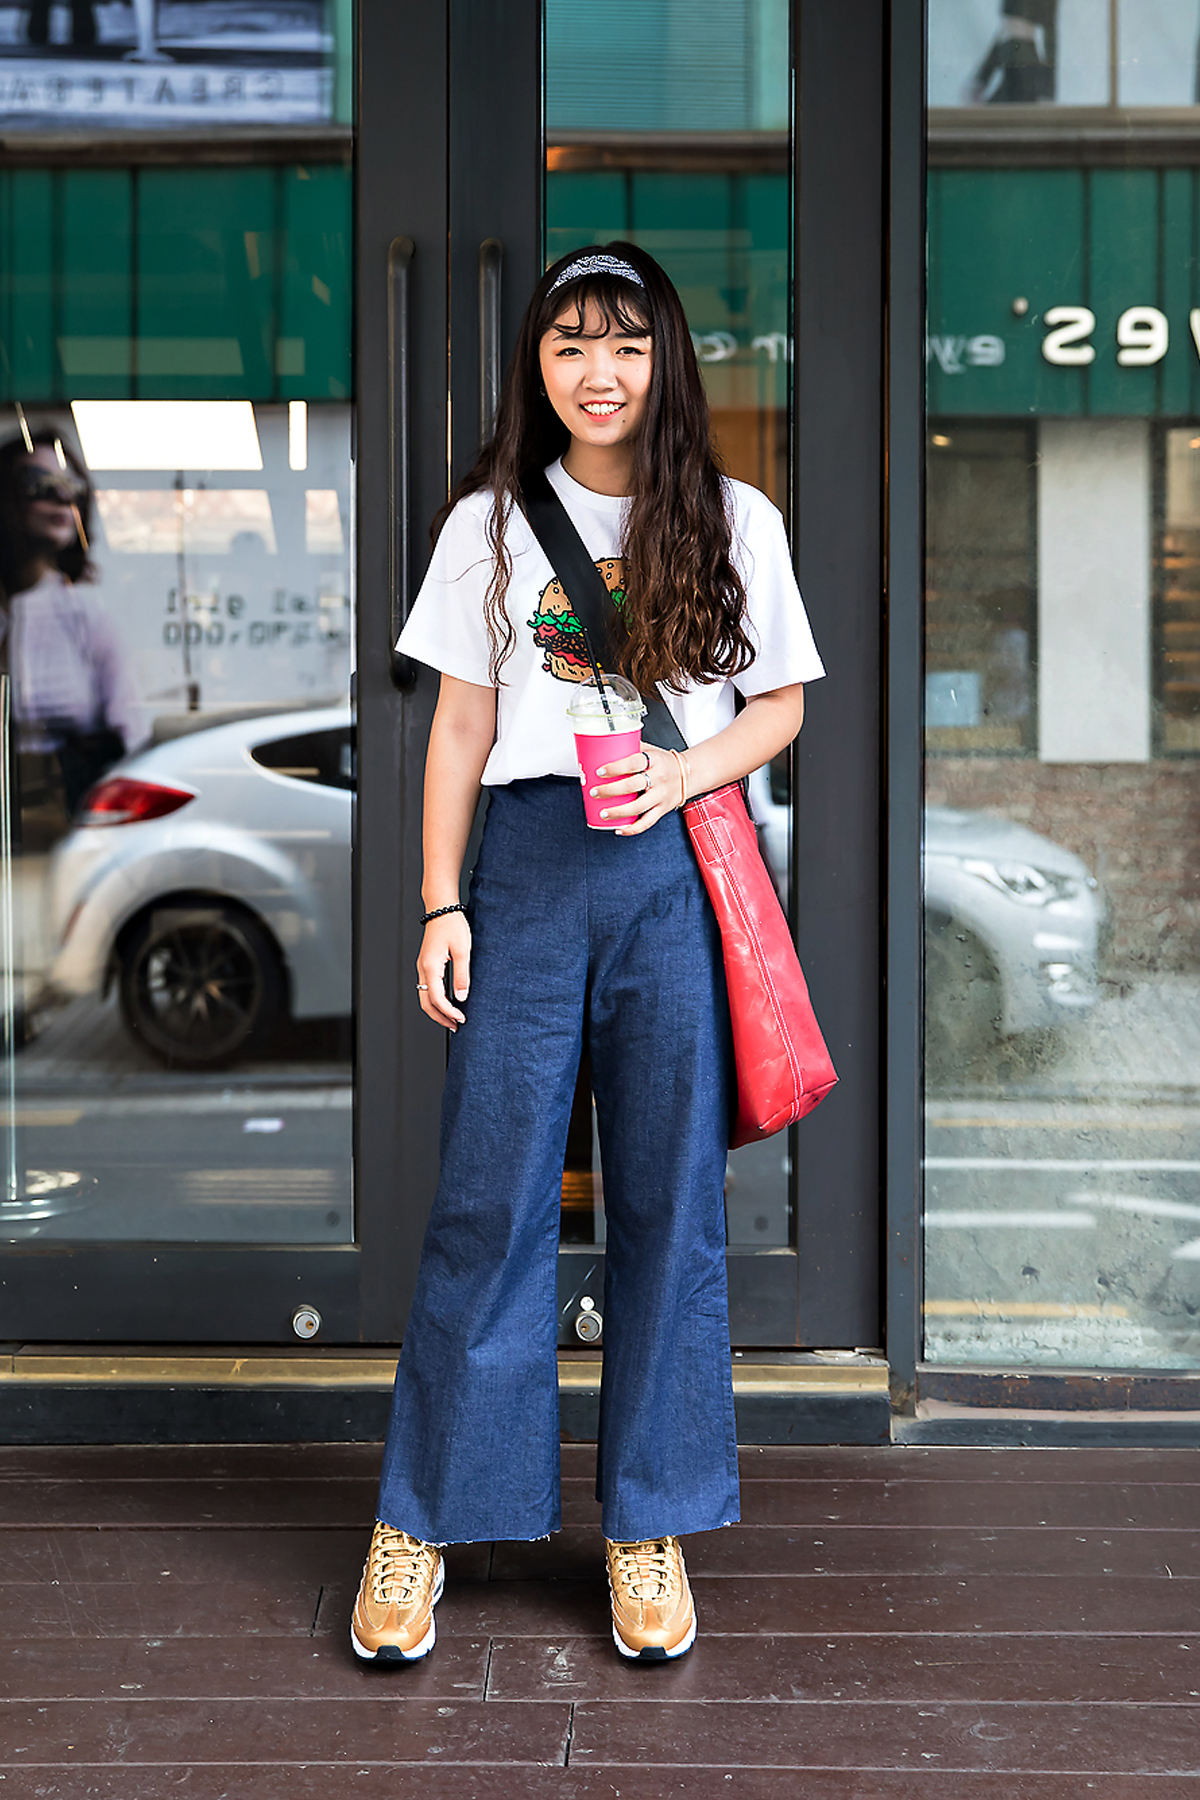 Kim Sehee, Street Fashion 2017 in Seoul.jpg